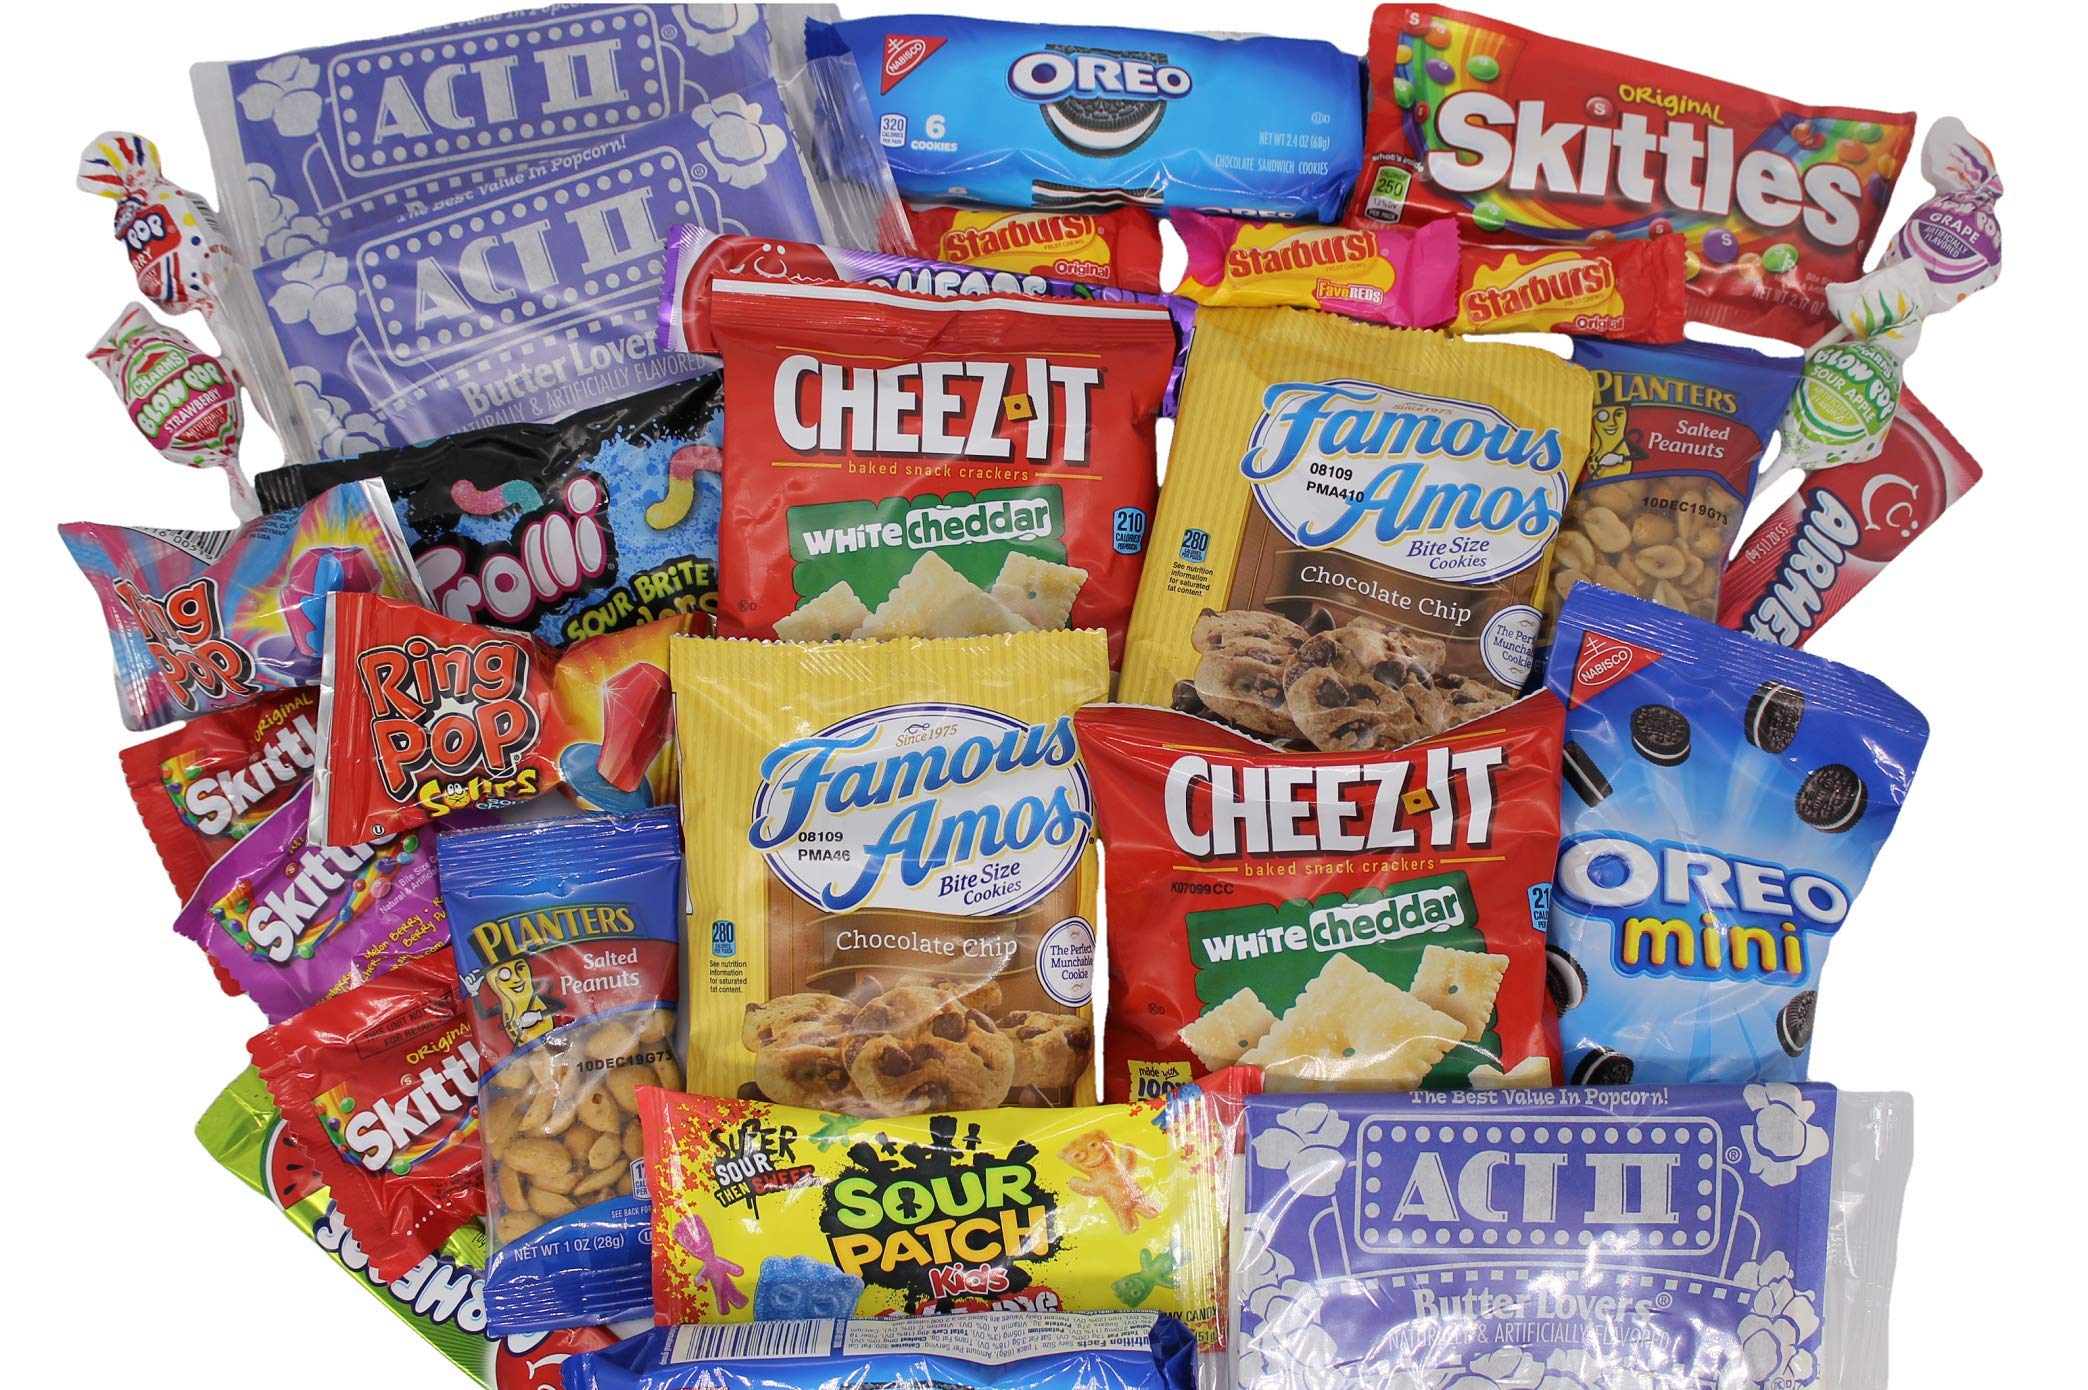 MOVIE NIGHT GIFT BASKET 30 Of Your Favorite Popcorn, Candy Cookies Crackers Perfect Birthday Box Holiday Surprised College Care Package Kids Party Family Movie Night Or A Special Date Night by Tiny Timz (Image #4)